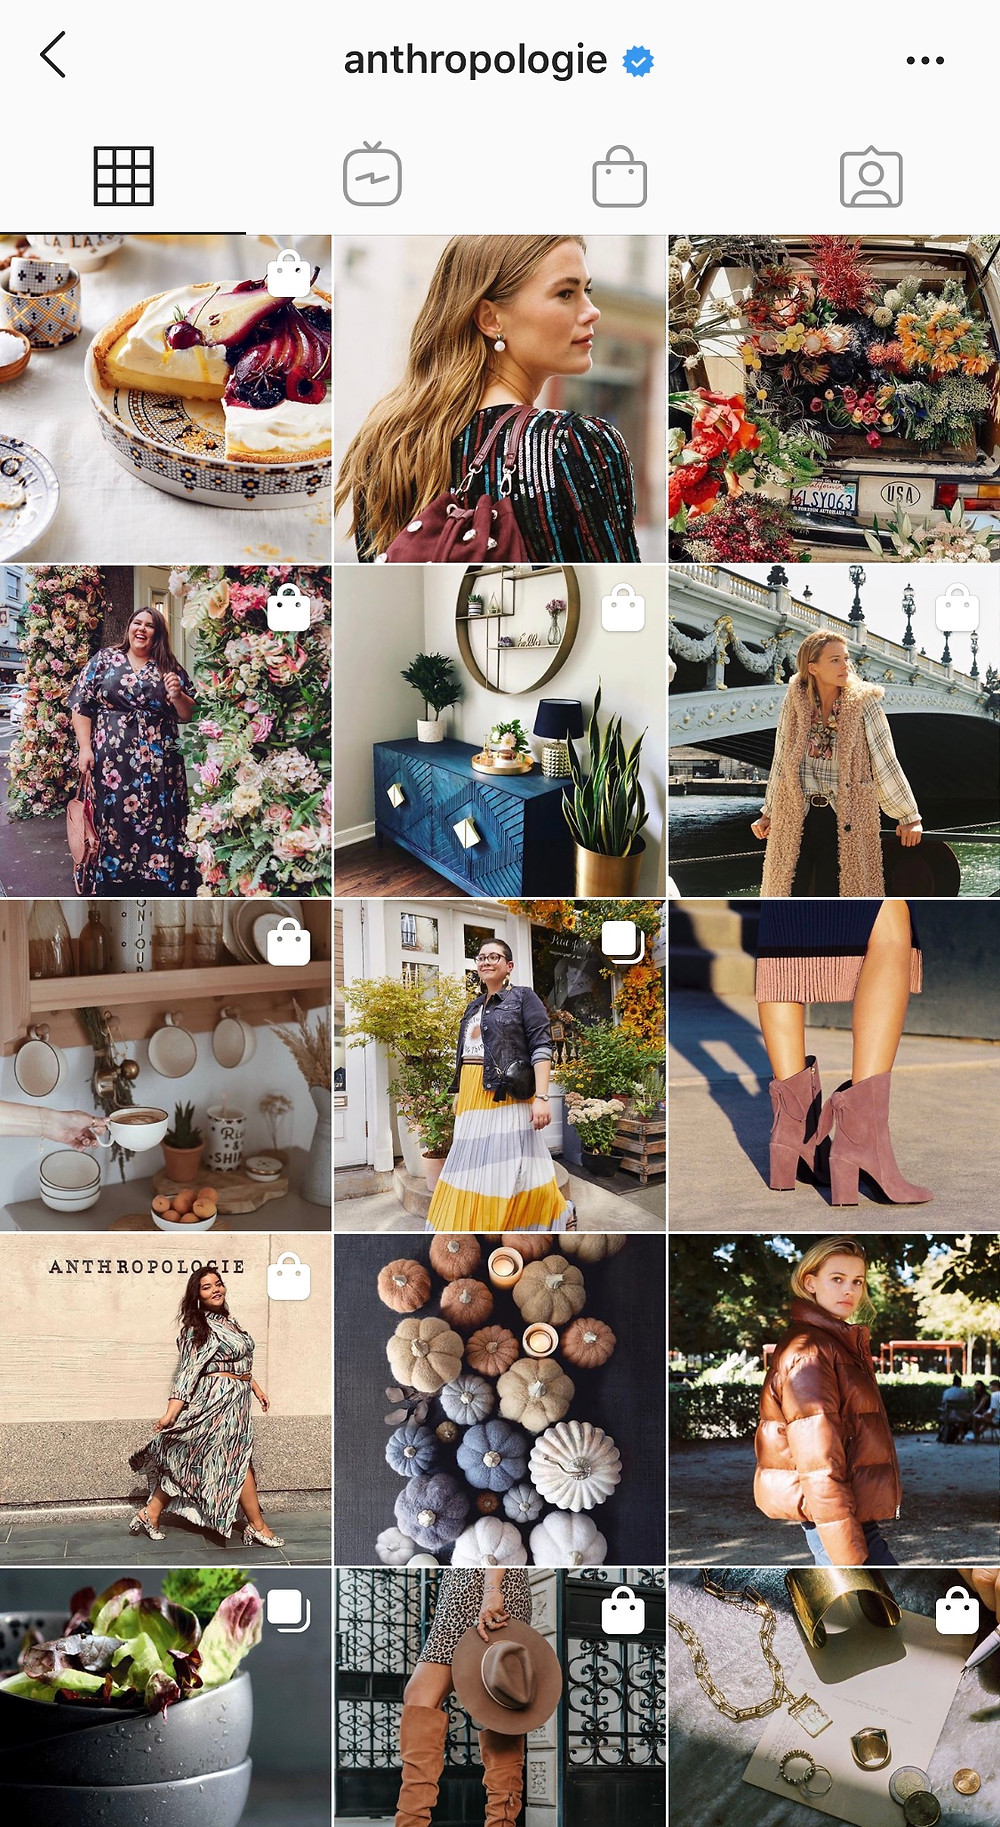 Anthropologie balances product imagery and lifestyle in a beautifully curated feed